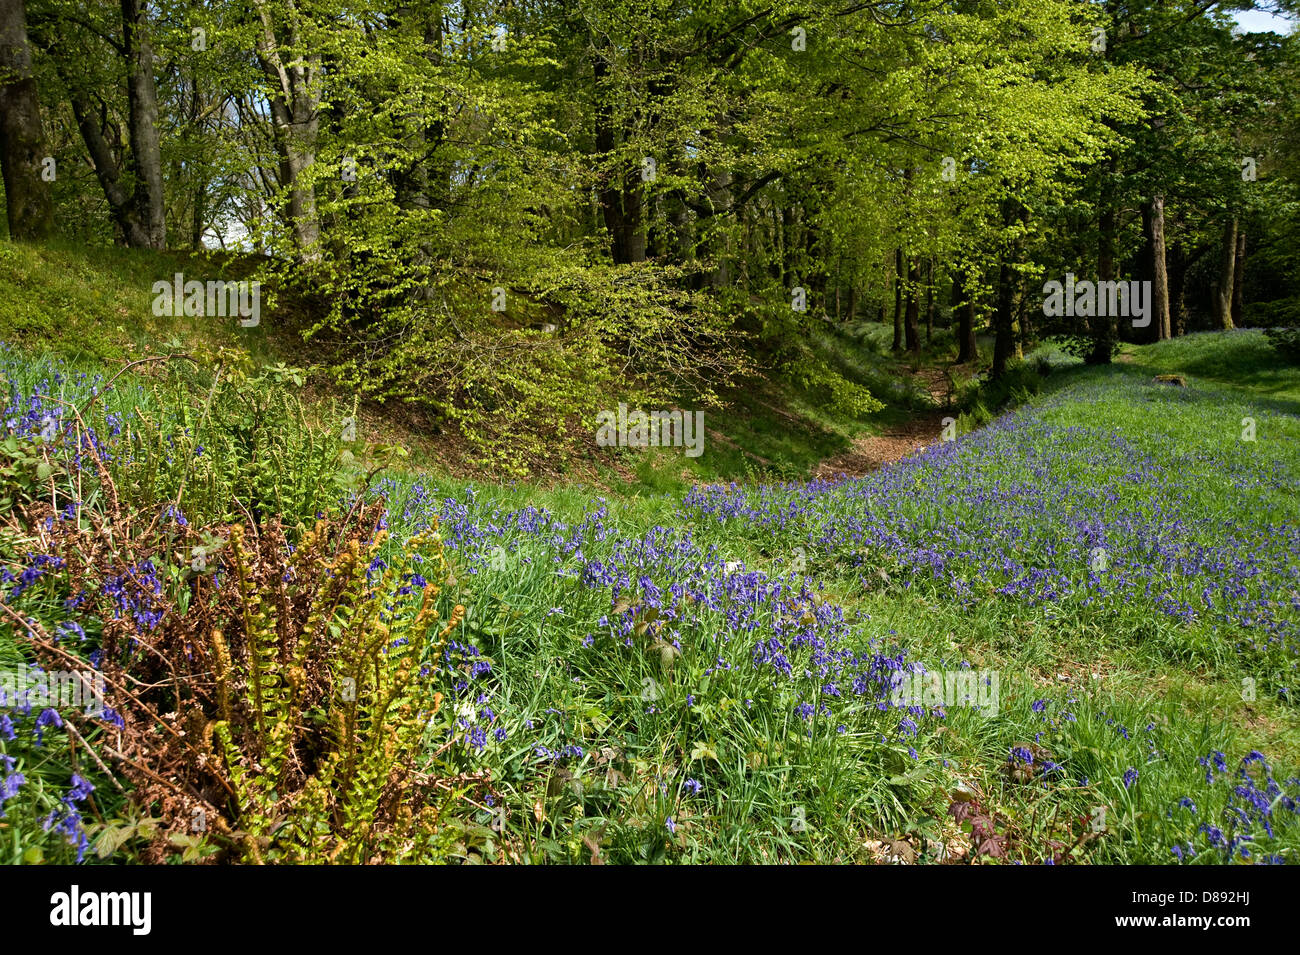 bluebells flowering at Blackbury Camp, a Devon Iron-age fort, with beech and oak trees in young leaf on a bright - Stock Image